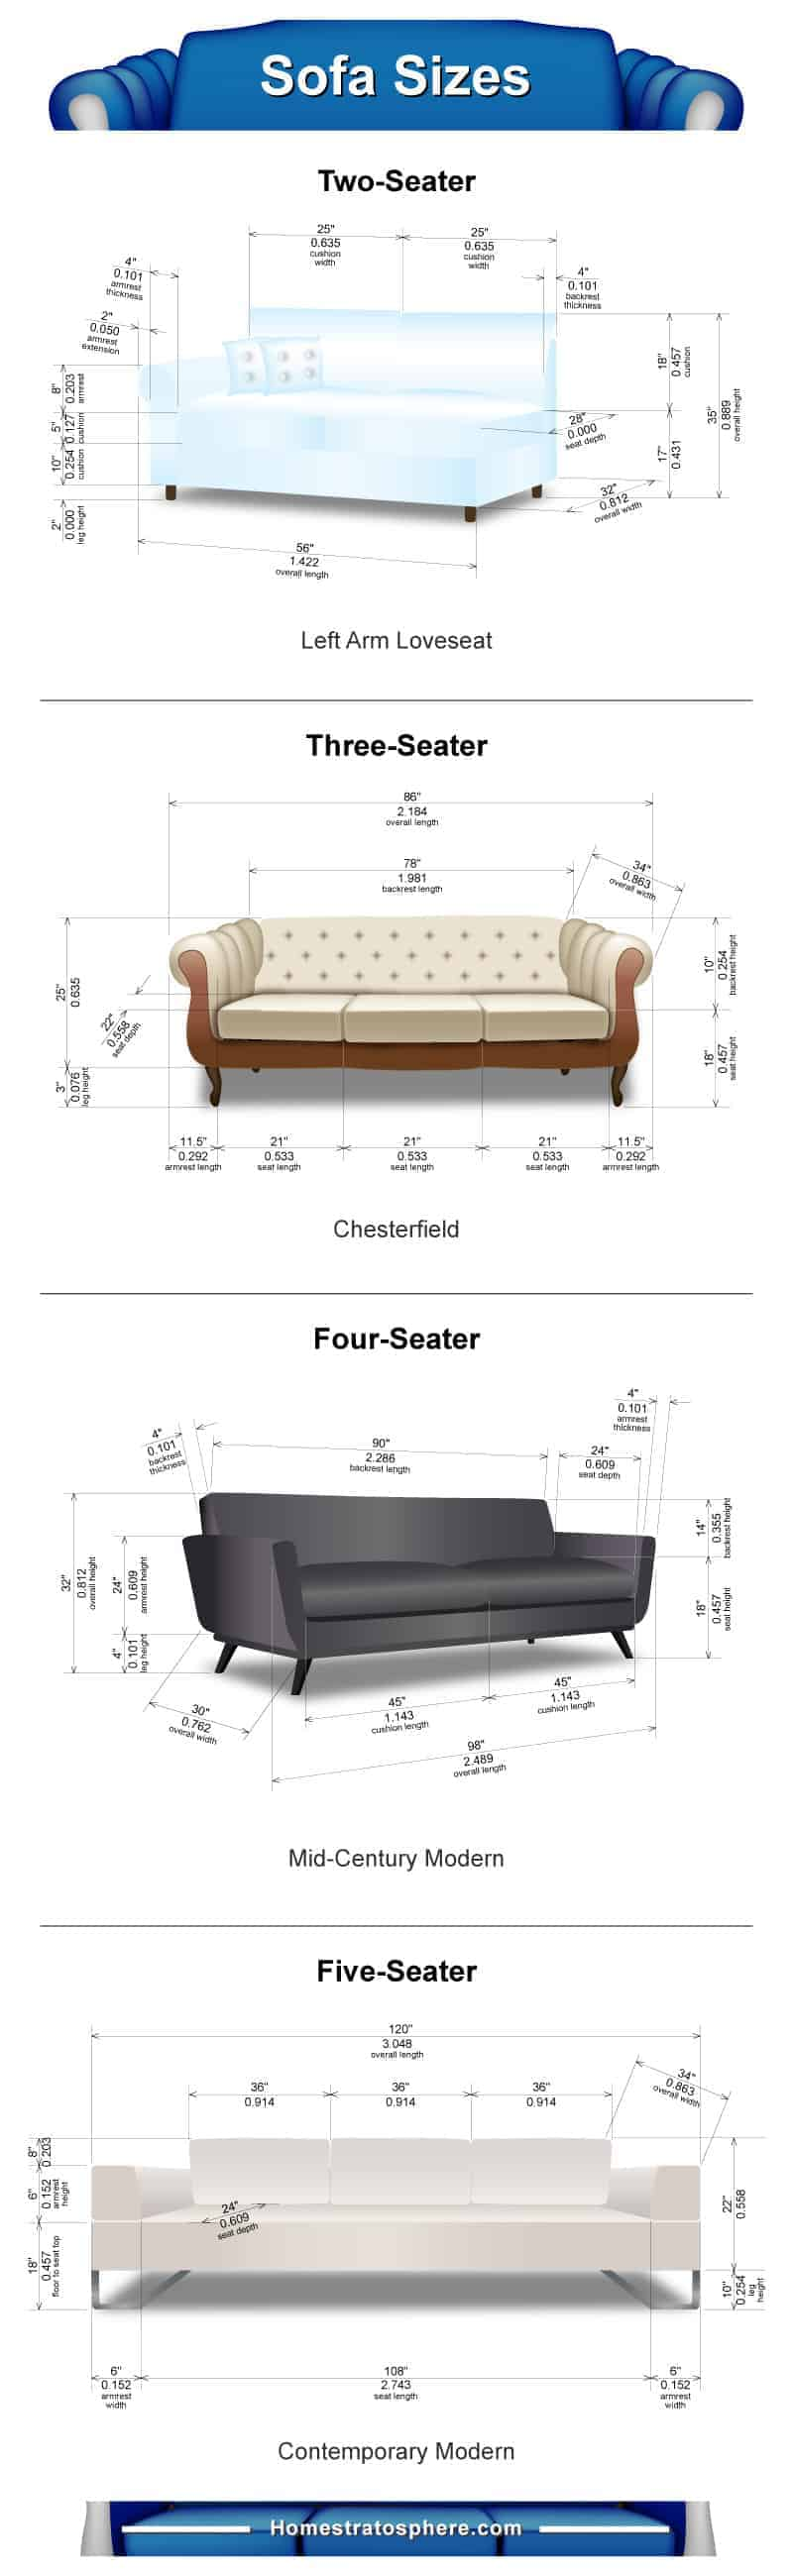 Phenomenal 22 Types Of Sofas Couches Explained With Pictures Beatyapartments Chair Design Images Beatyapartmentscom